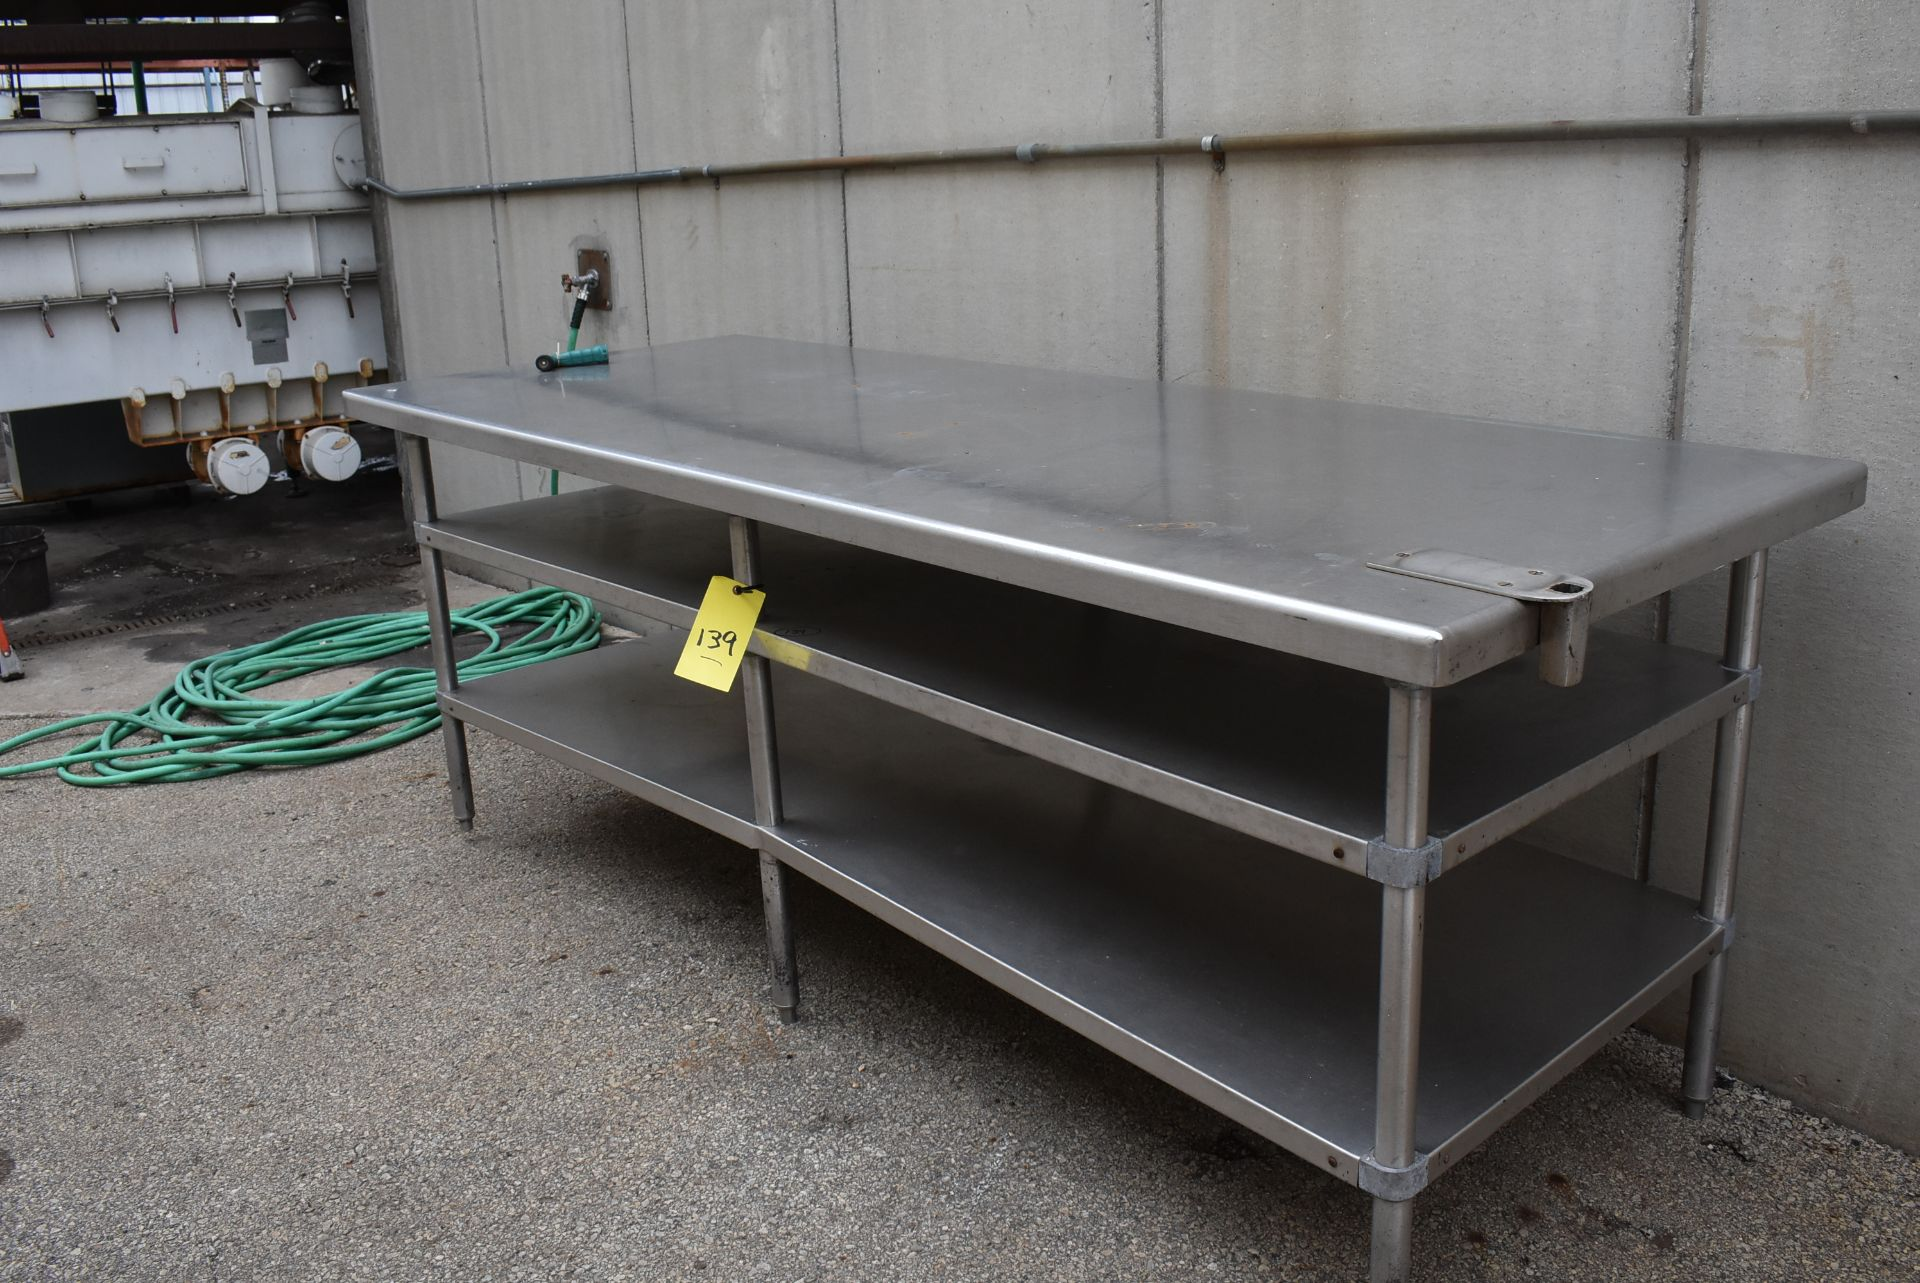 Stainless Steel Table, 8' x 3'